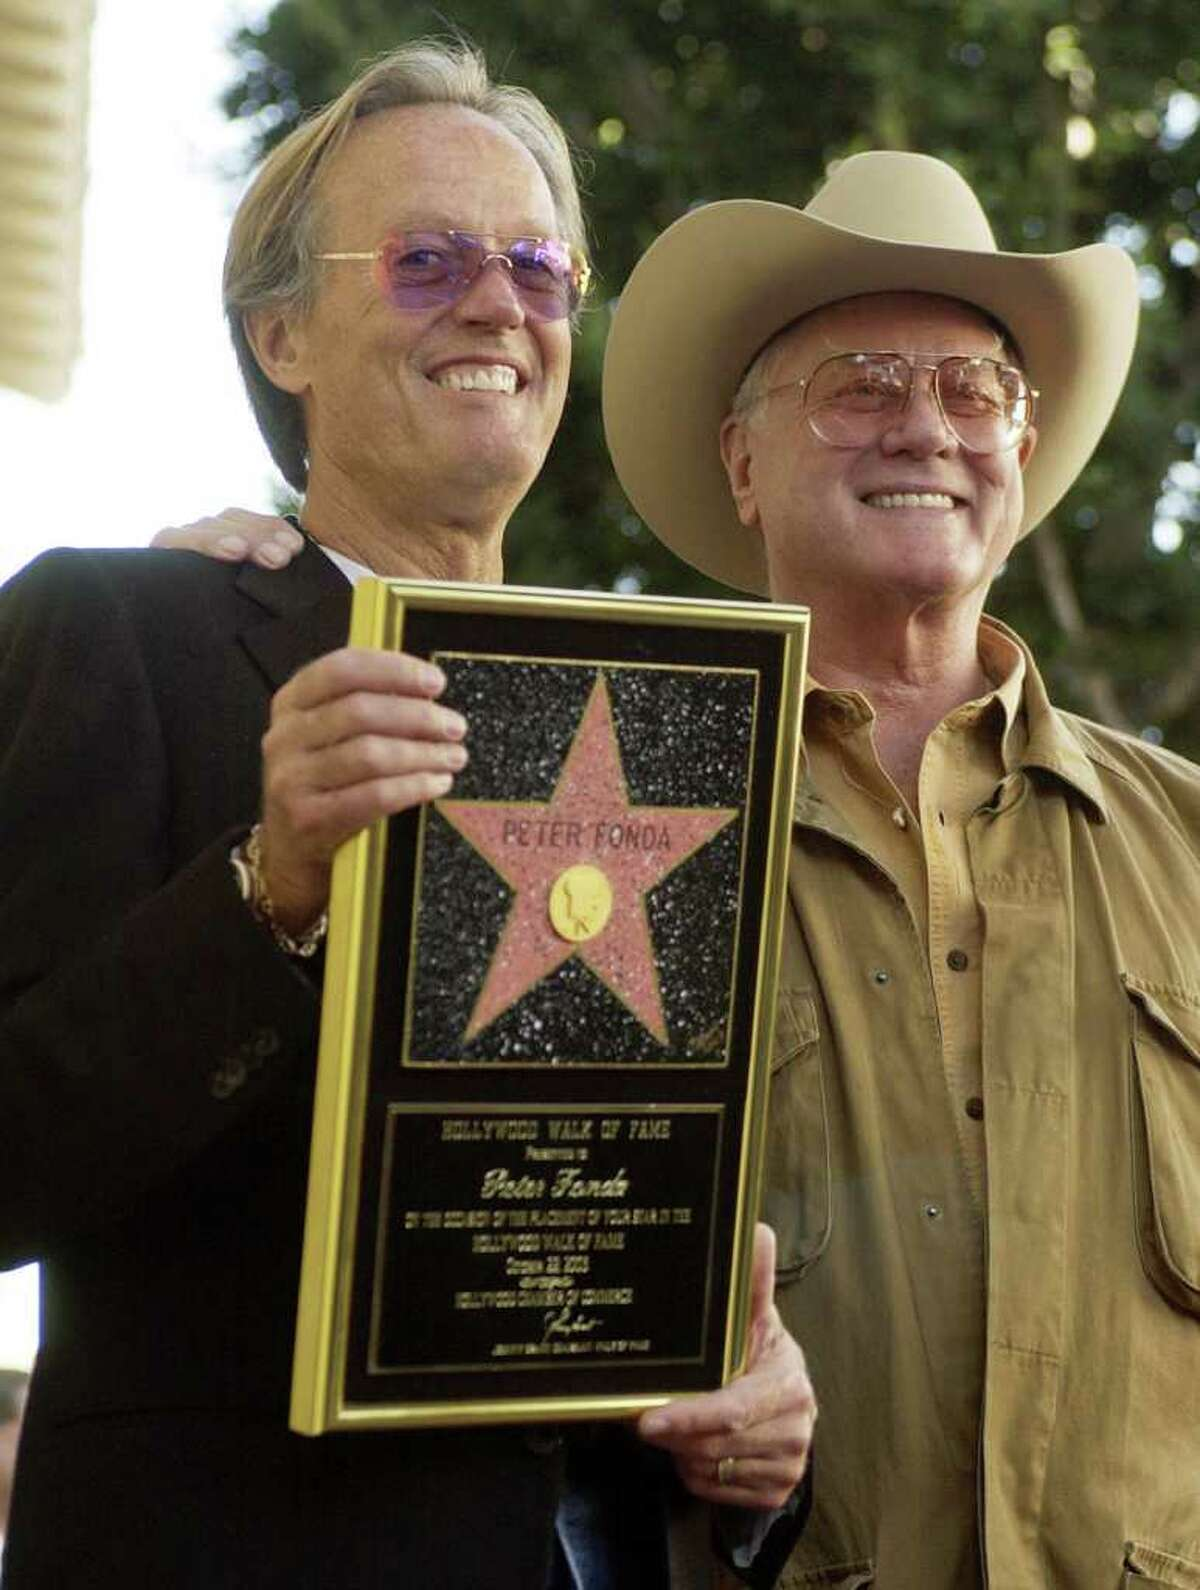 Actor-director Peter Fonda, left, is joined by actor Larry Hagman as he holds a replica of his new star on the Hollywood Walk of Fame in Los Angeles, Wednesday, Oct. 22, 2003. Hagman appeared in the television version of Fonda's 1971 film,